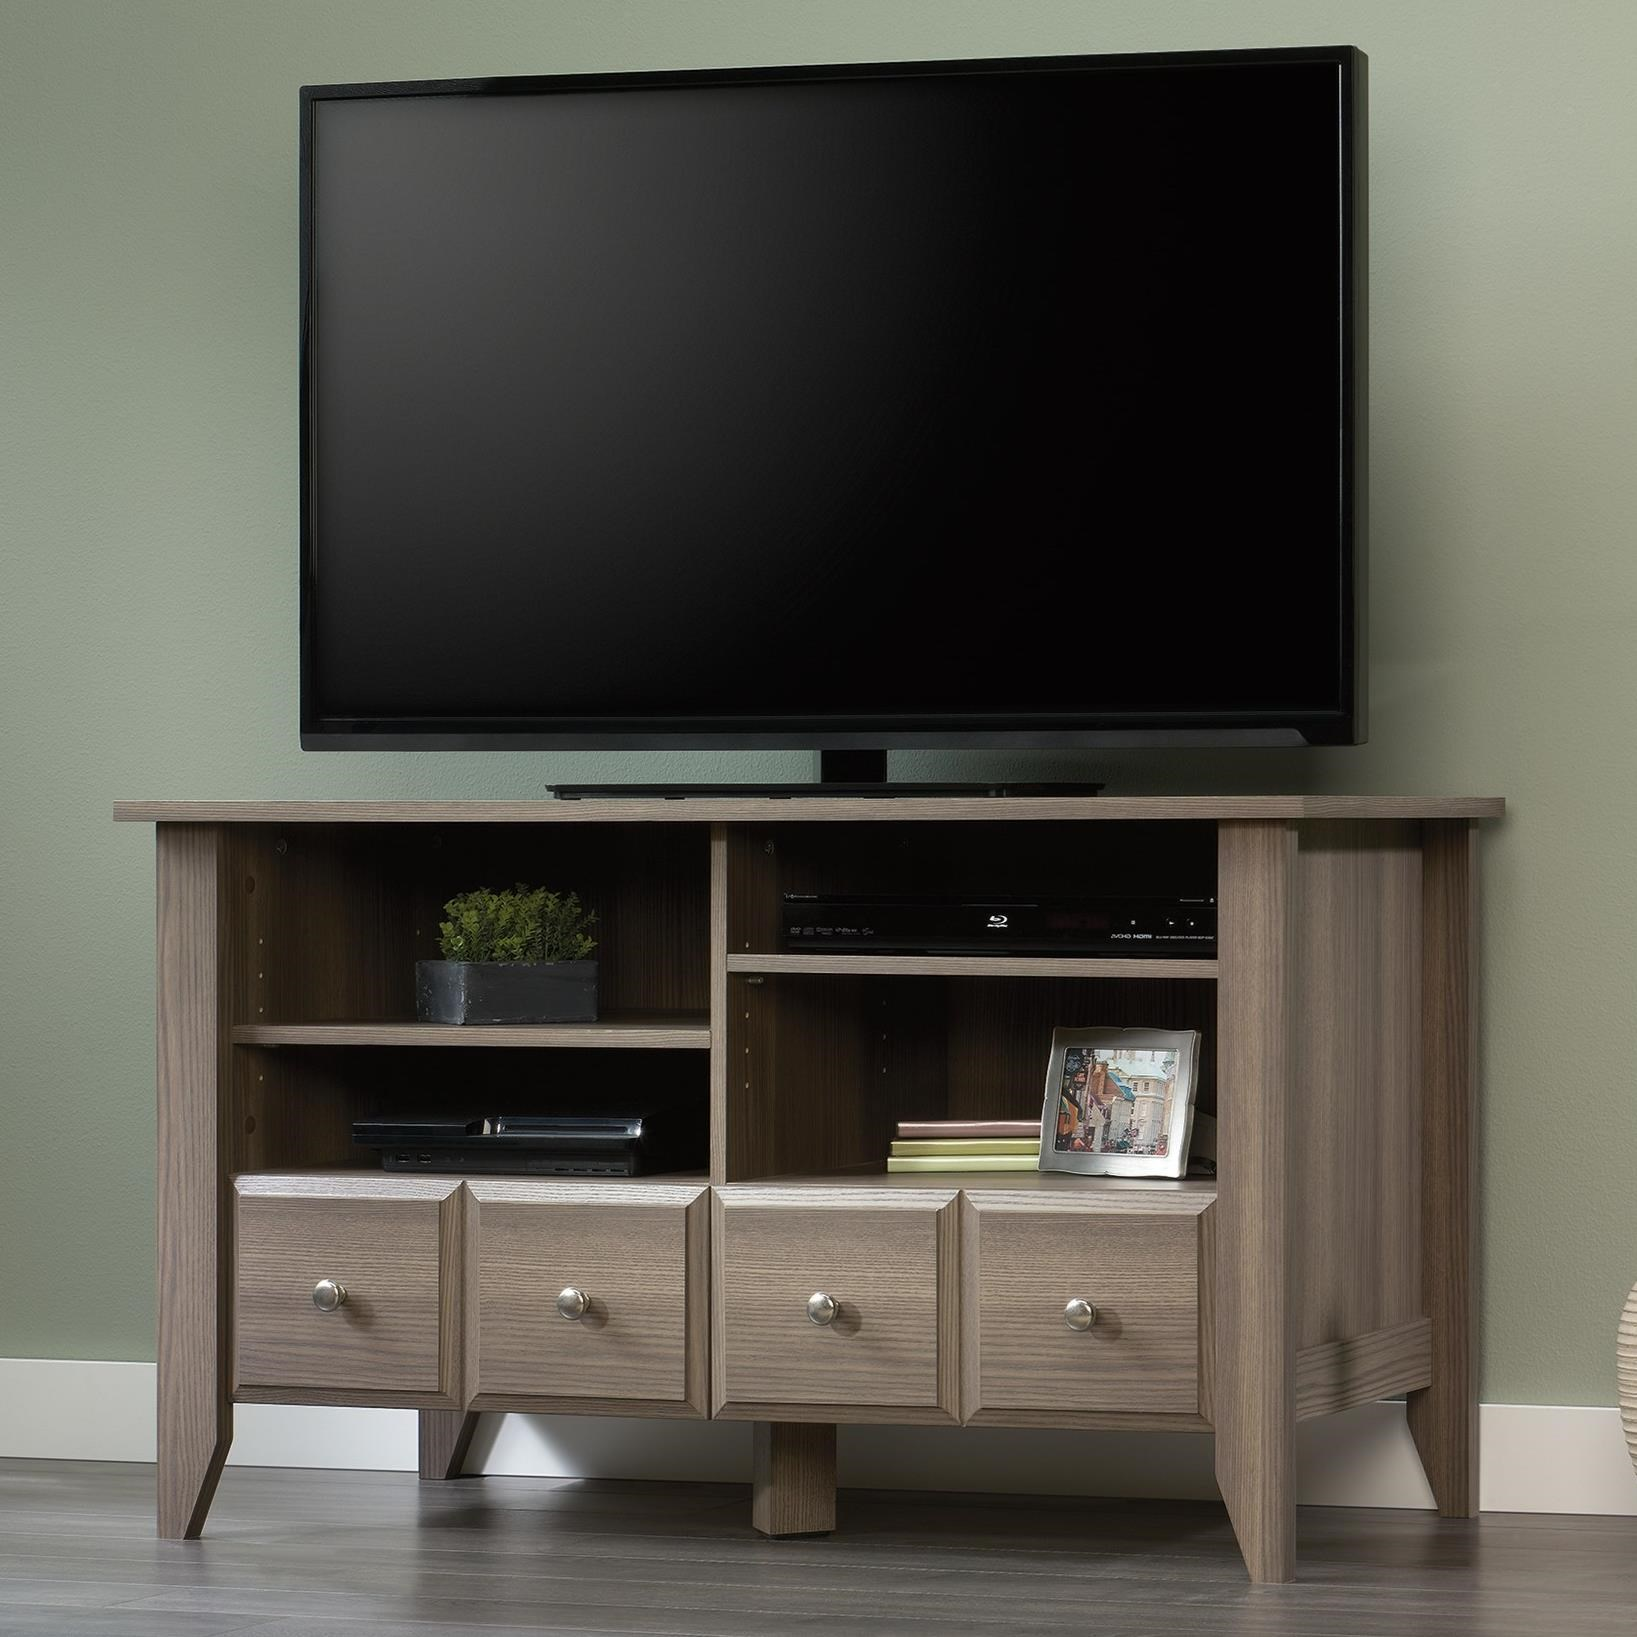 Levitz Home Furnishings: Sauder Shoal Creek 418655 TV Stand With Adjustable Shelves